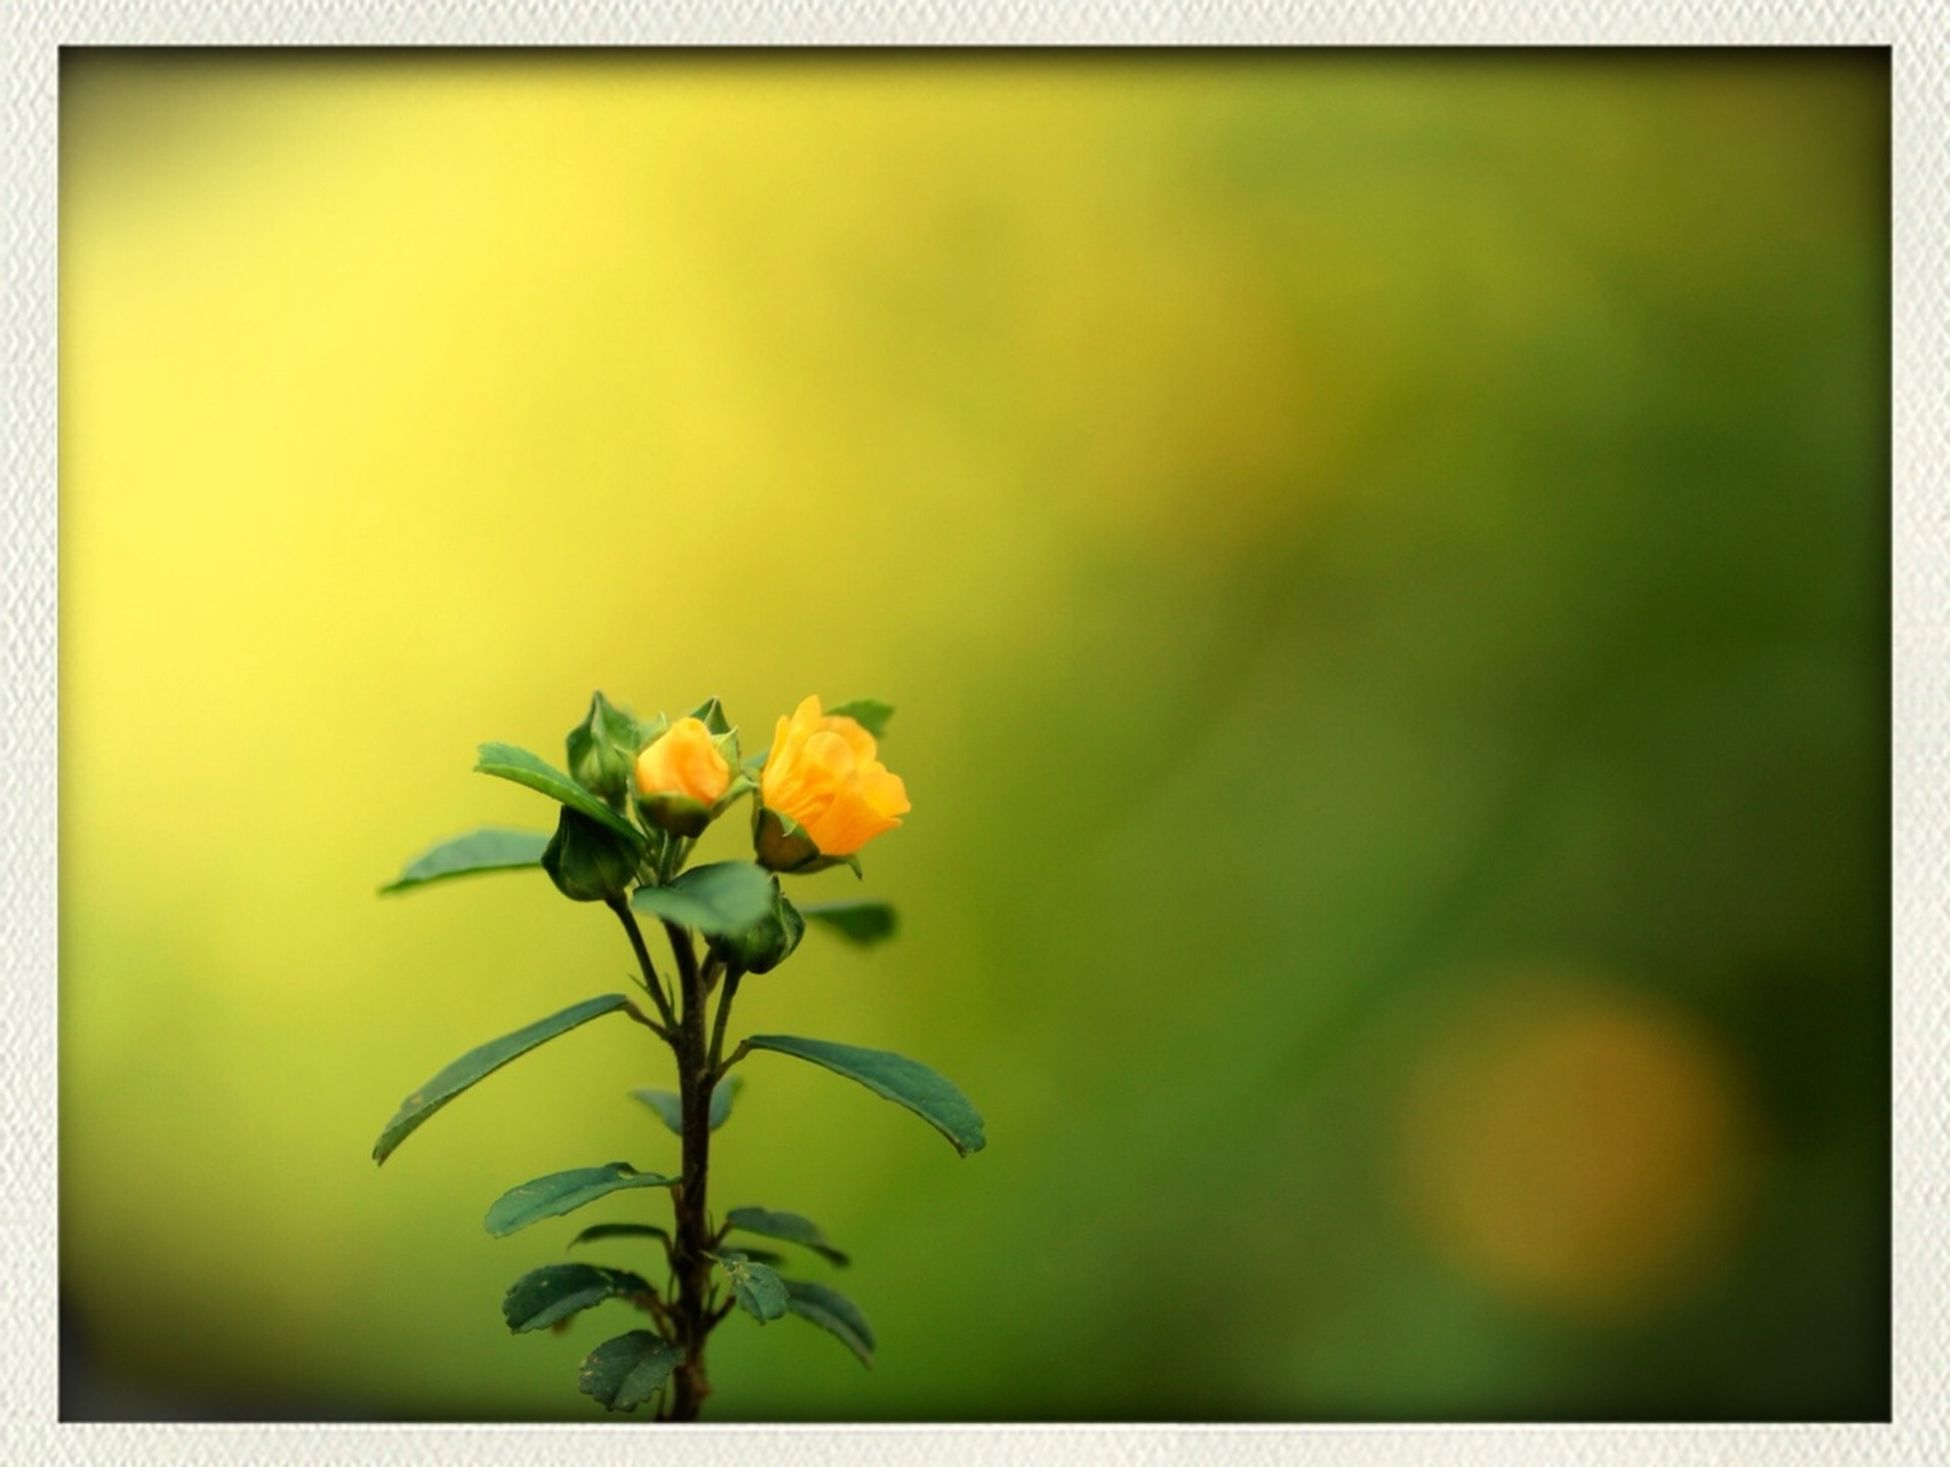 flower, fragility, yellow, stem, growth, no people, nature, petal, freshness, plant, focus on foreground, flower head, beauty in nature, blooming, close-up, depth of field, selective focus, new life, beginnings, fragility, botany, growing